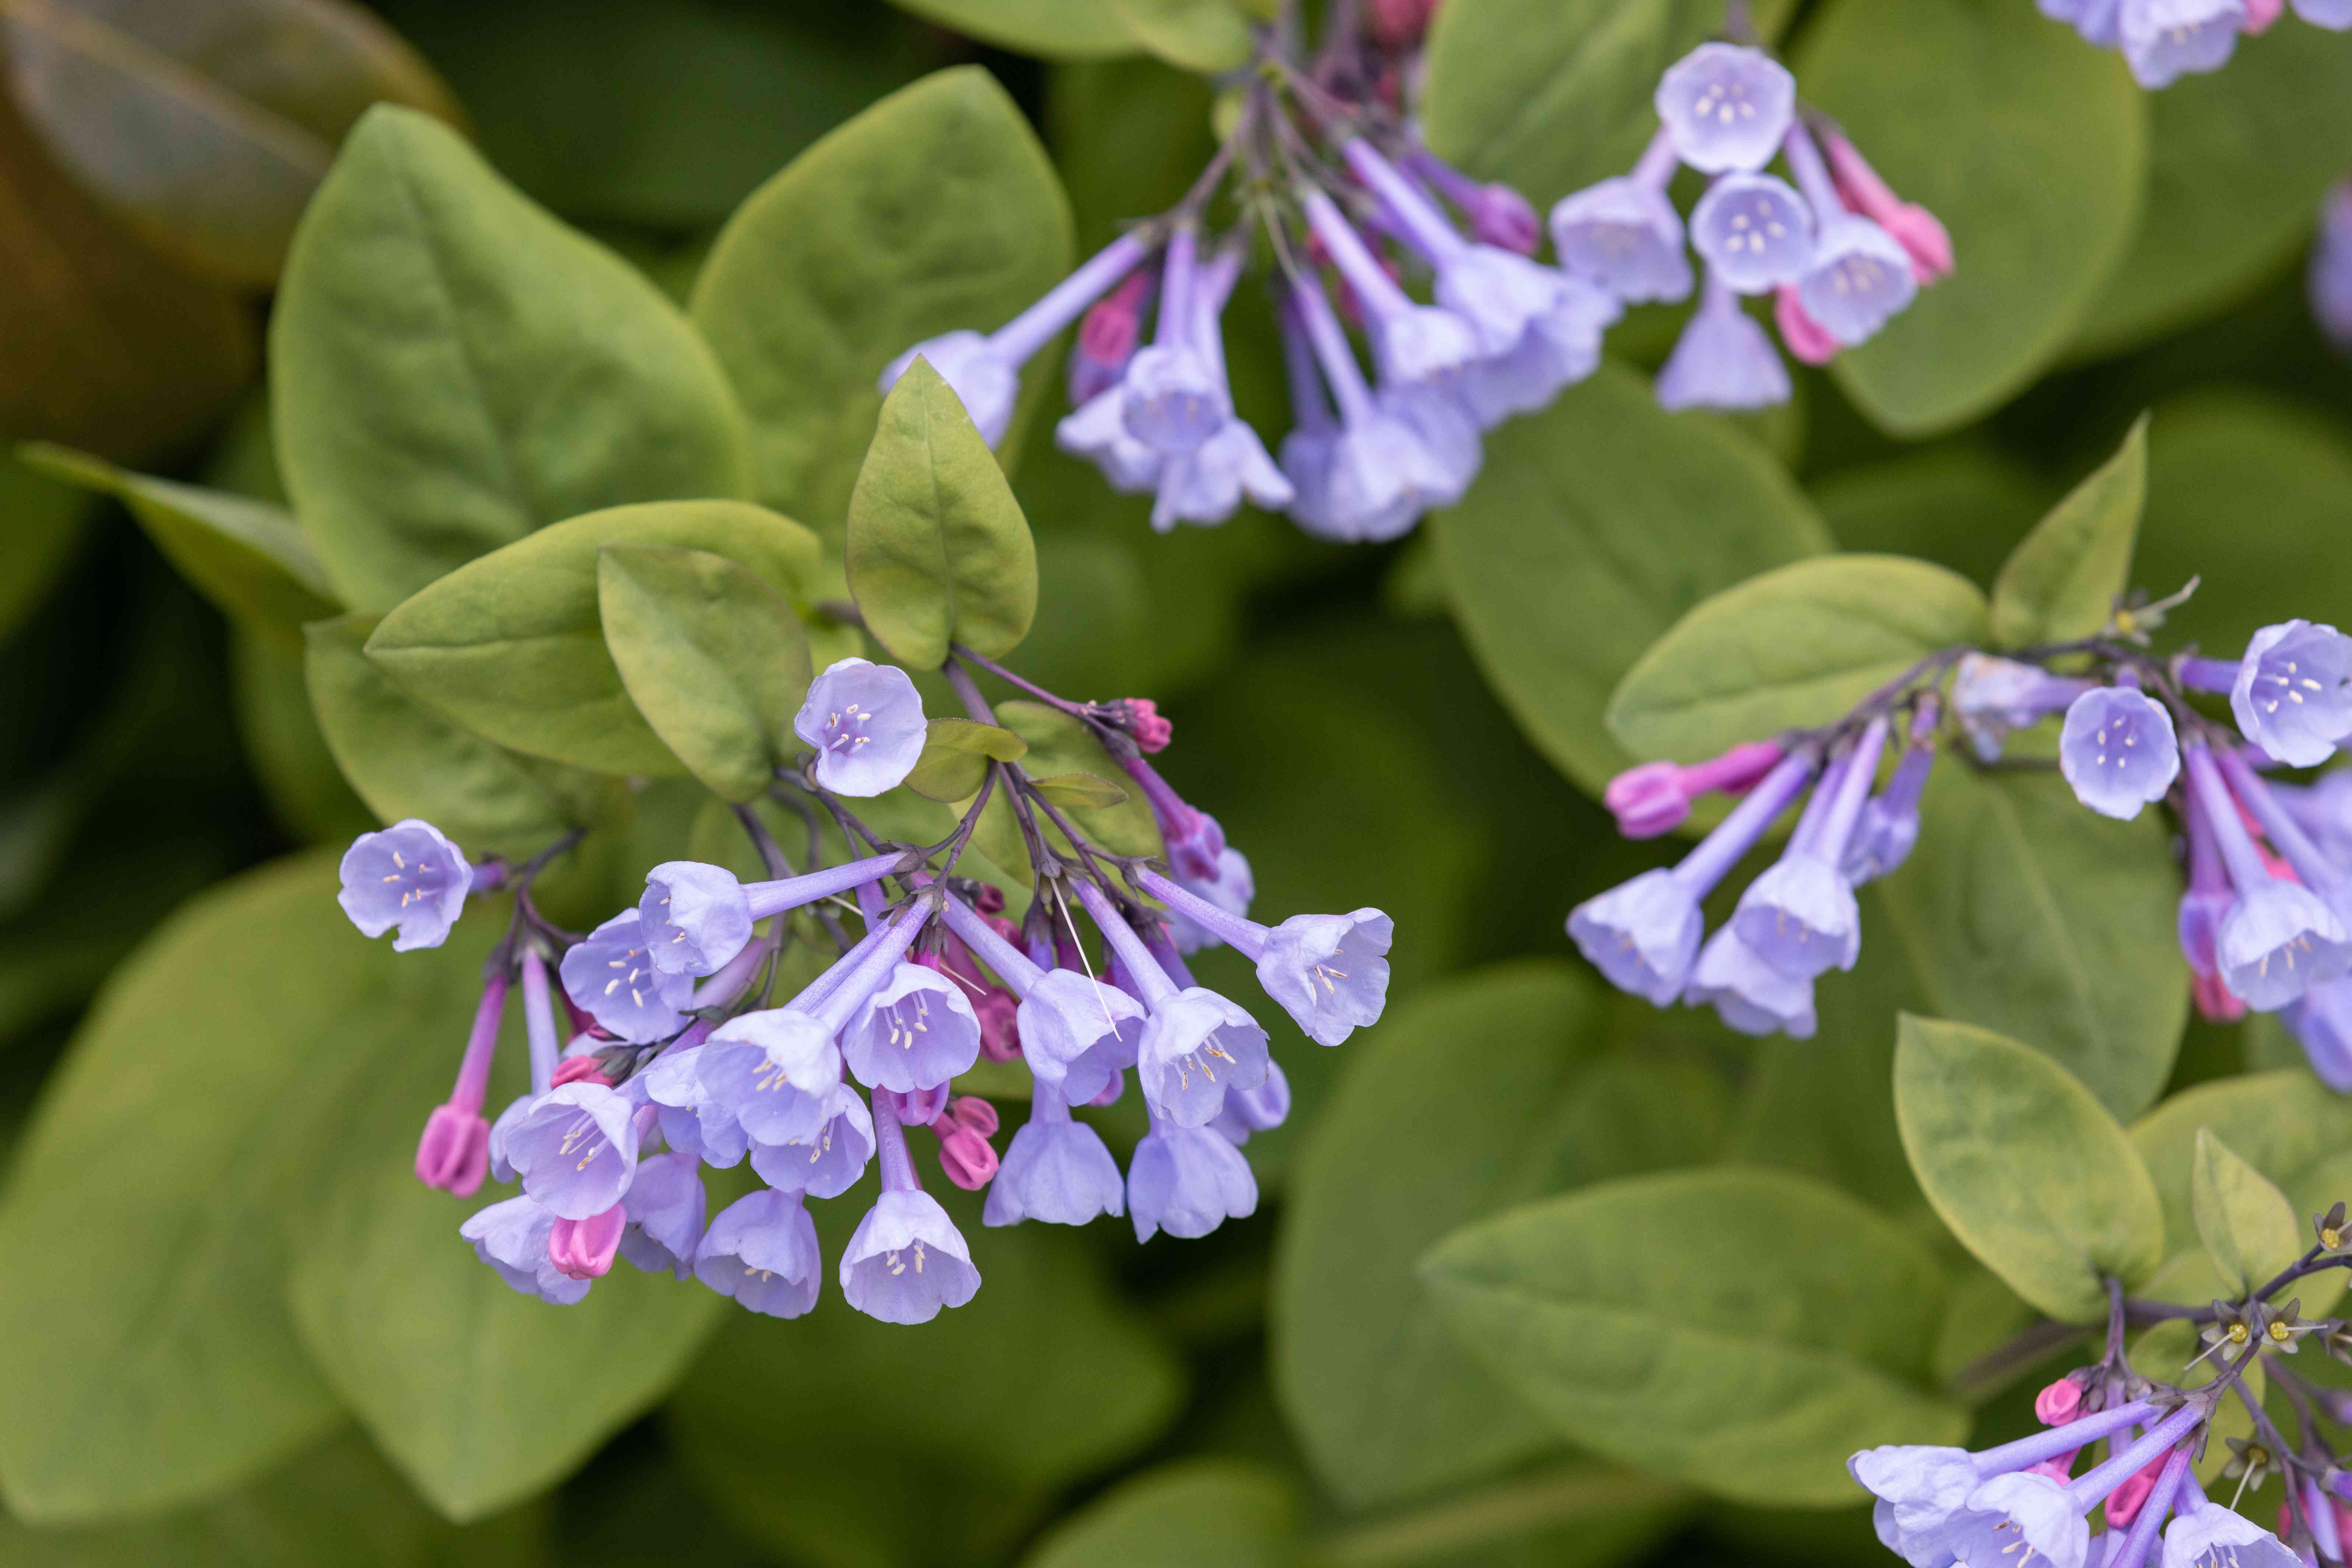 Virginia bluebell plant with small light purple trumpet-like flowers and buds surrounded by rounded leaves